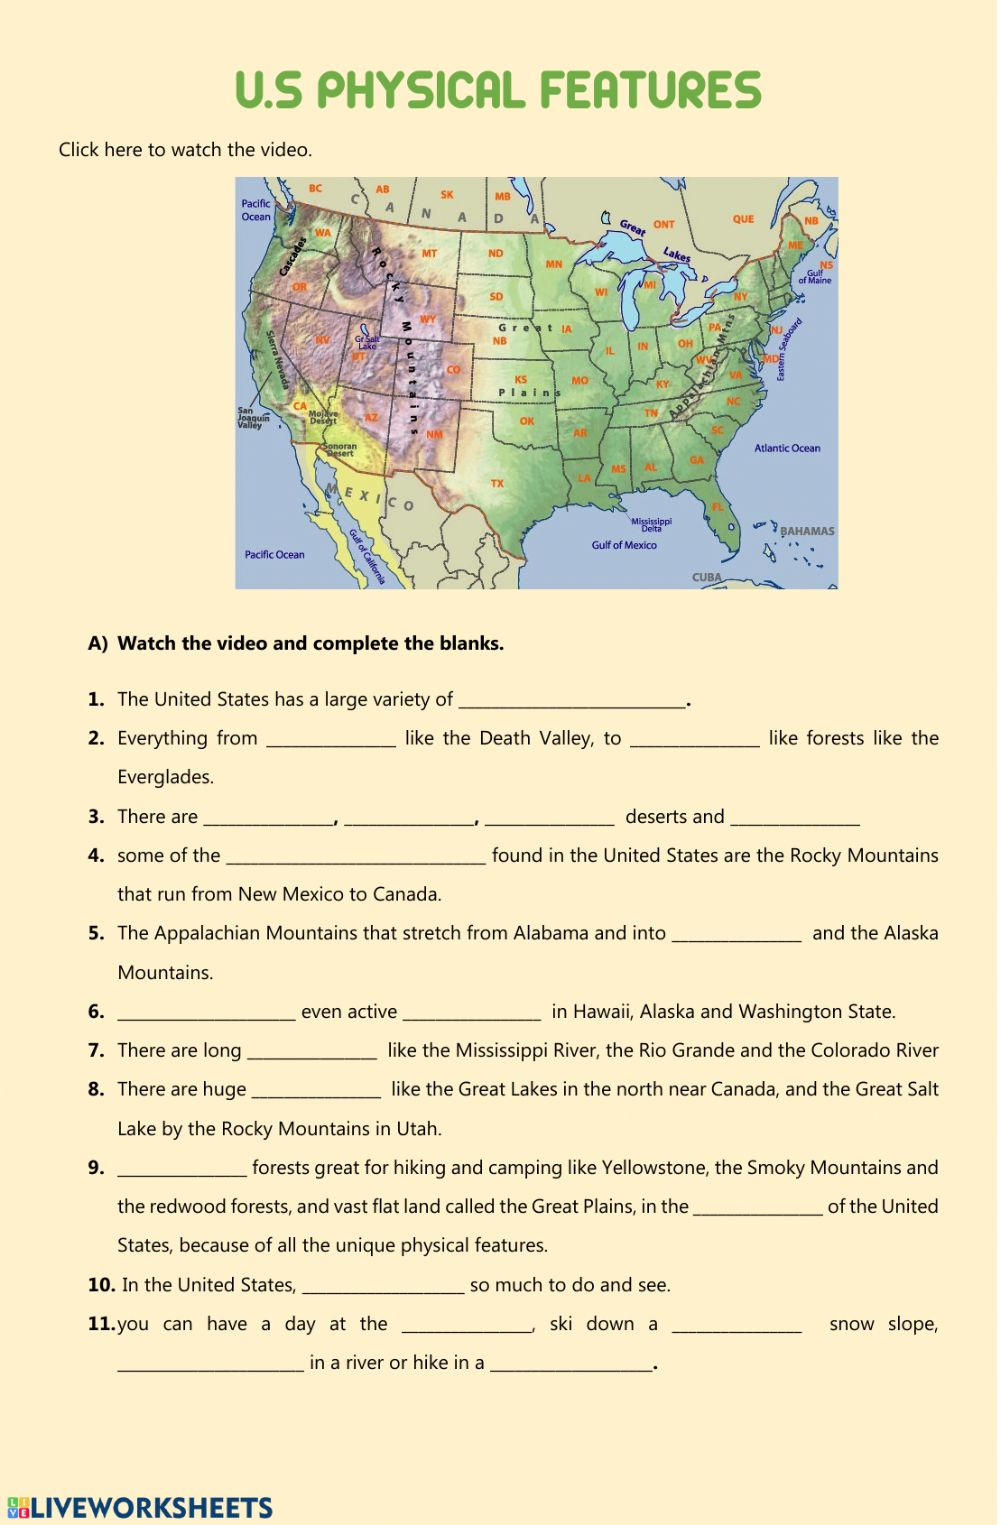 Picture of: Ejercicio De Usa Physical Features Geographical Features